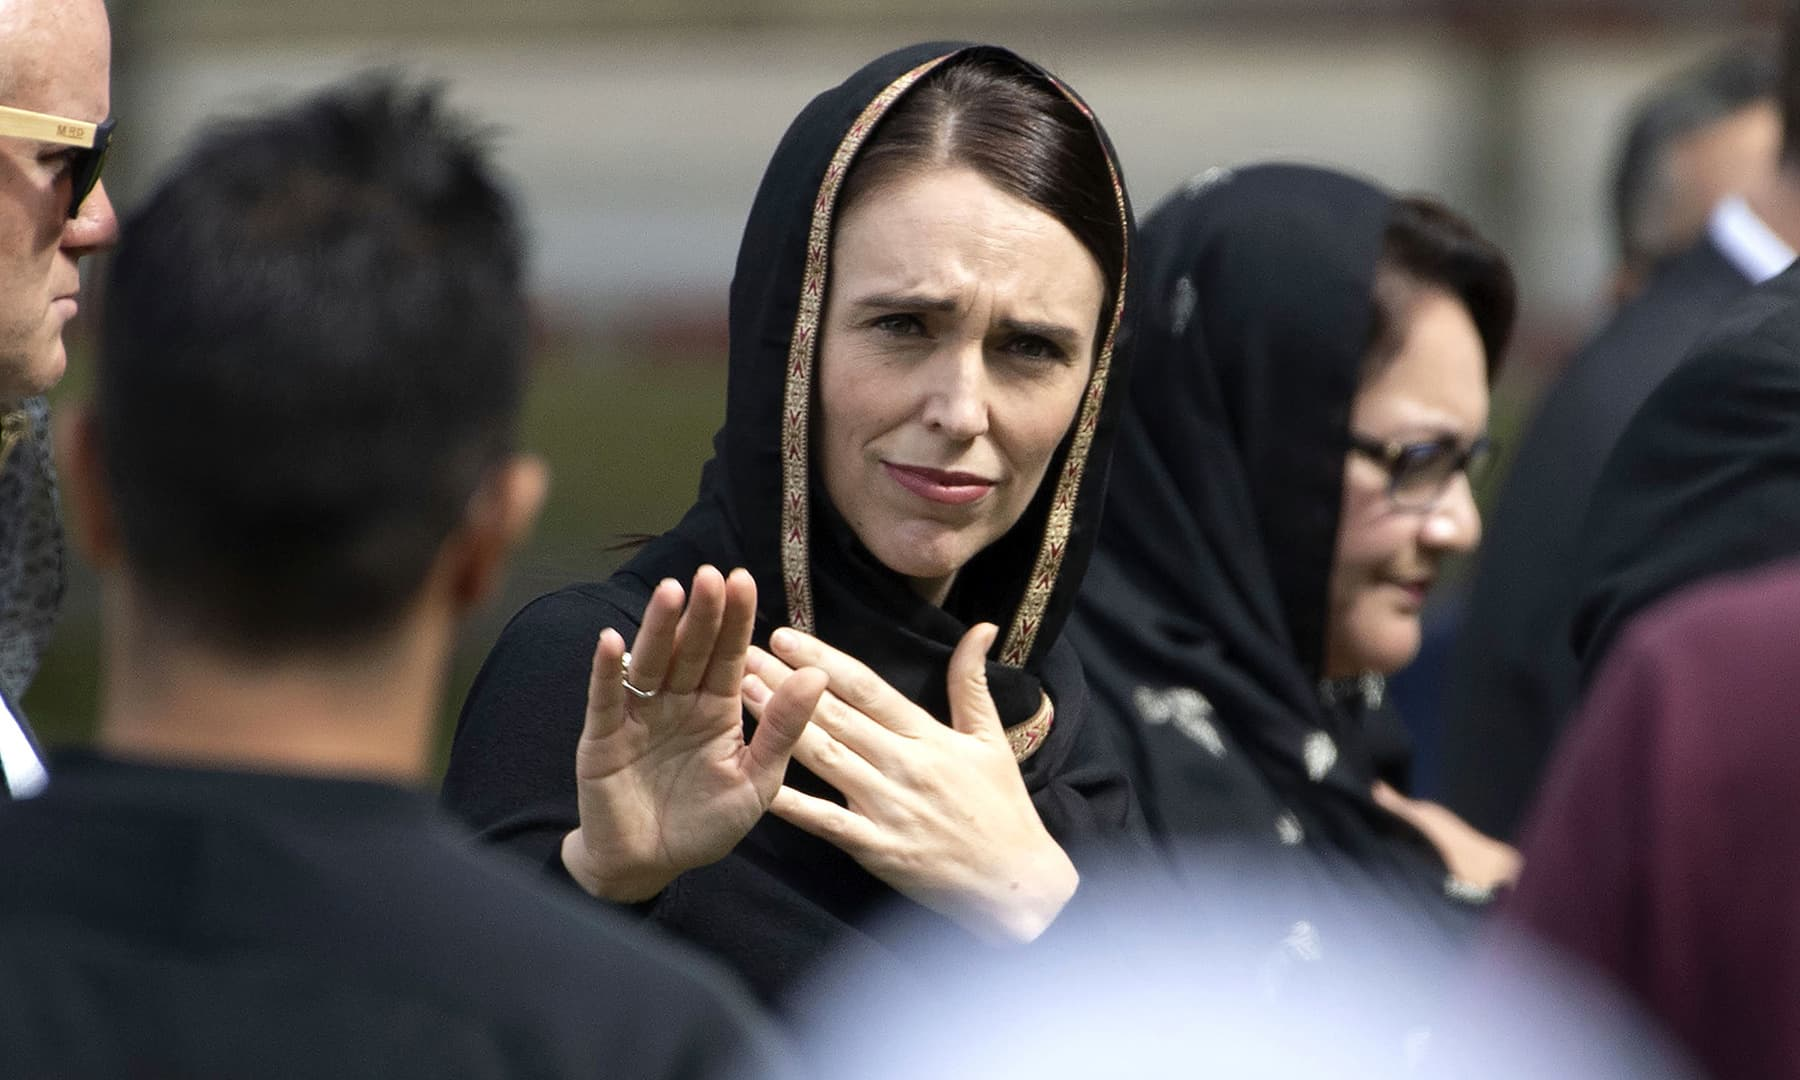 New Zealand's Prime Minister Jacinda Ardern gestures as she departs following a gathering for congregational Friday prayers and two minutes of silence for victims of the twin mosque massacre, at Hagley Park in Christchurch. — AFP